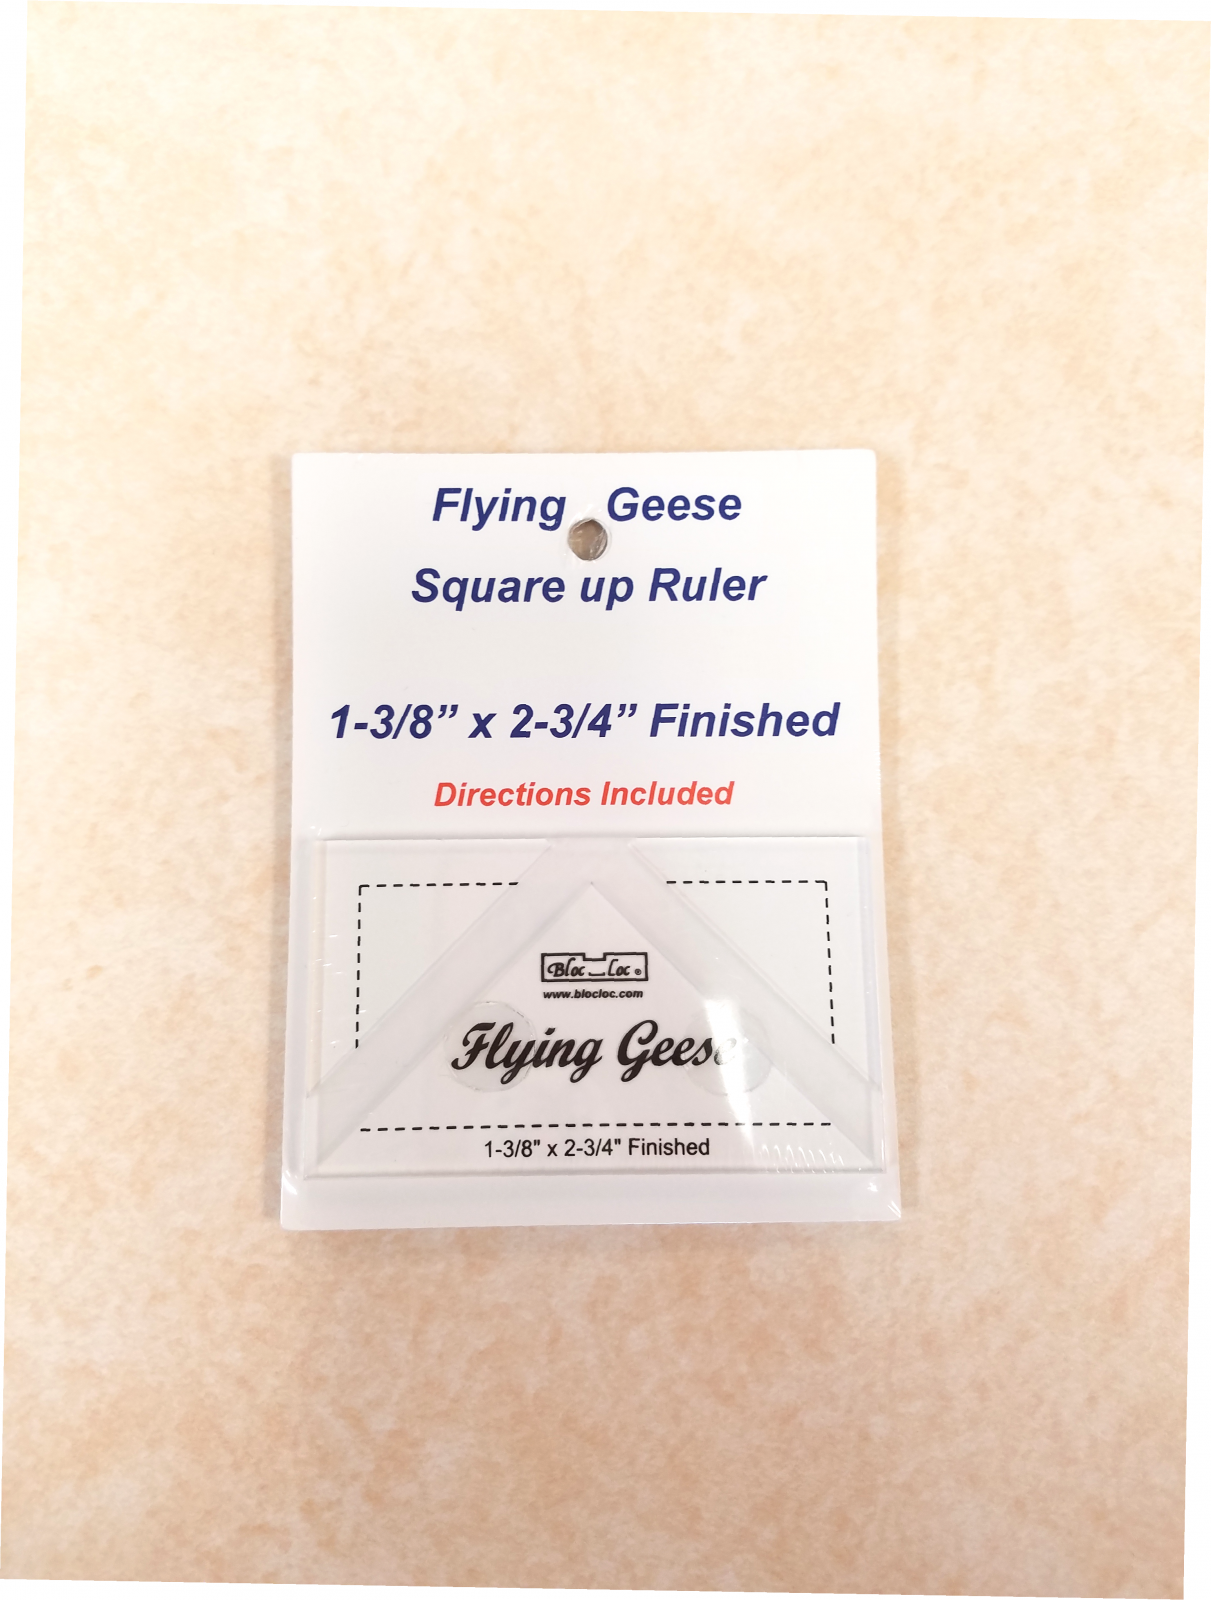 Bloc Loc Flying Geese Square Up Ruler 1-3/8 x 2-3/4